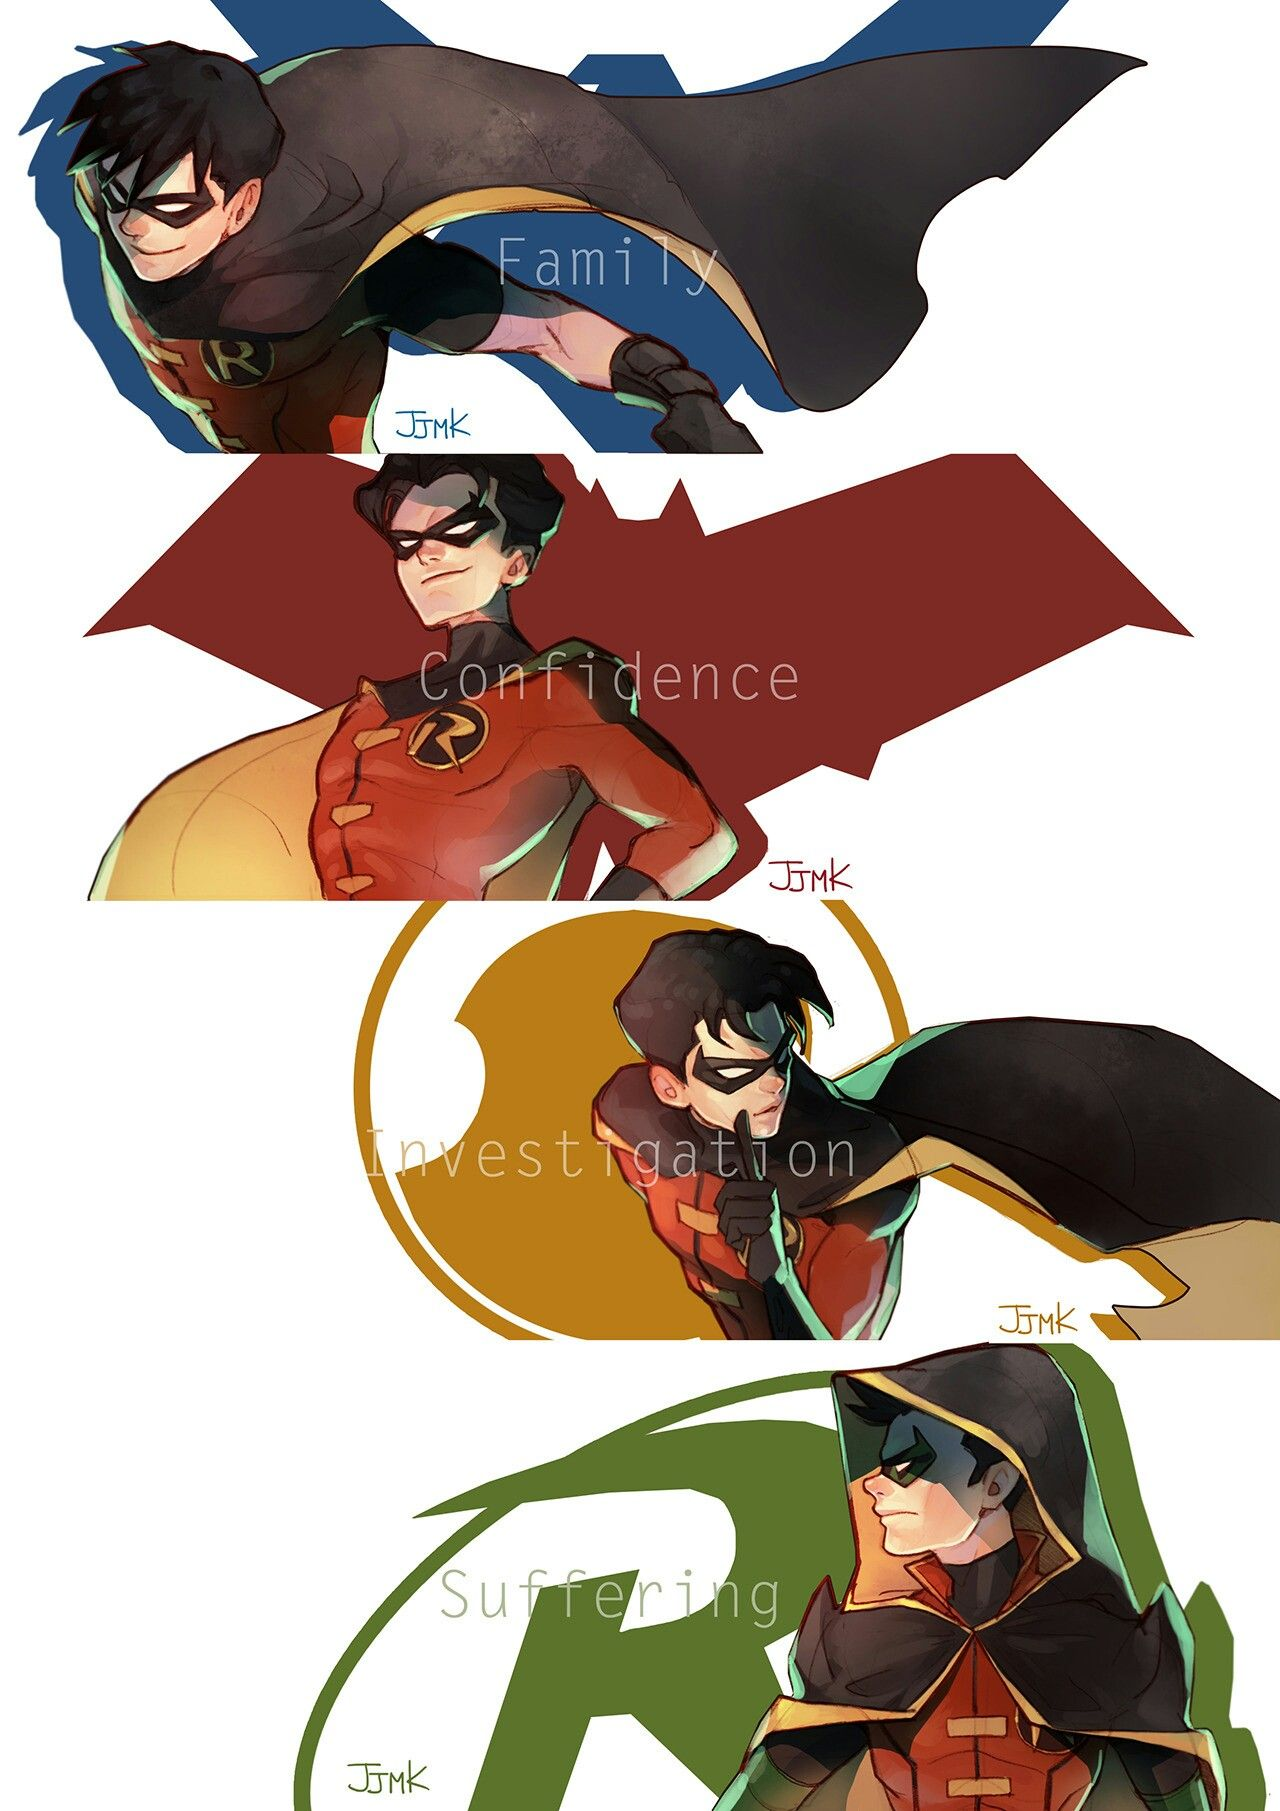 Nightwing, Richard Dick Grayson, The First Robin | Red Hood